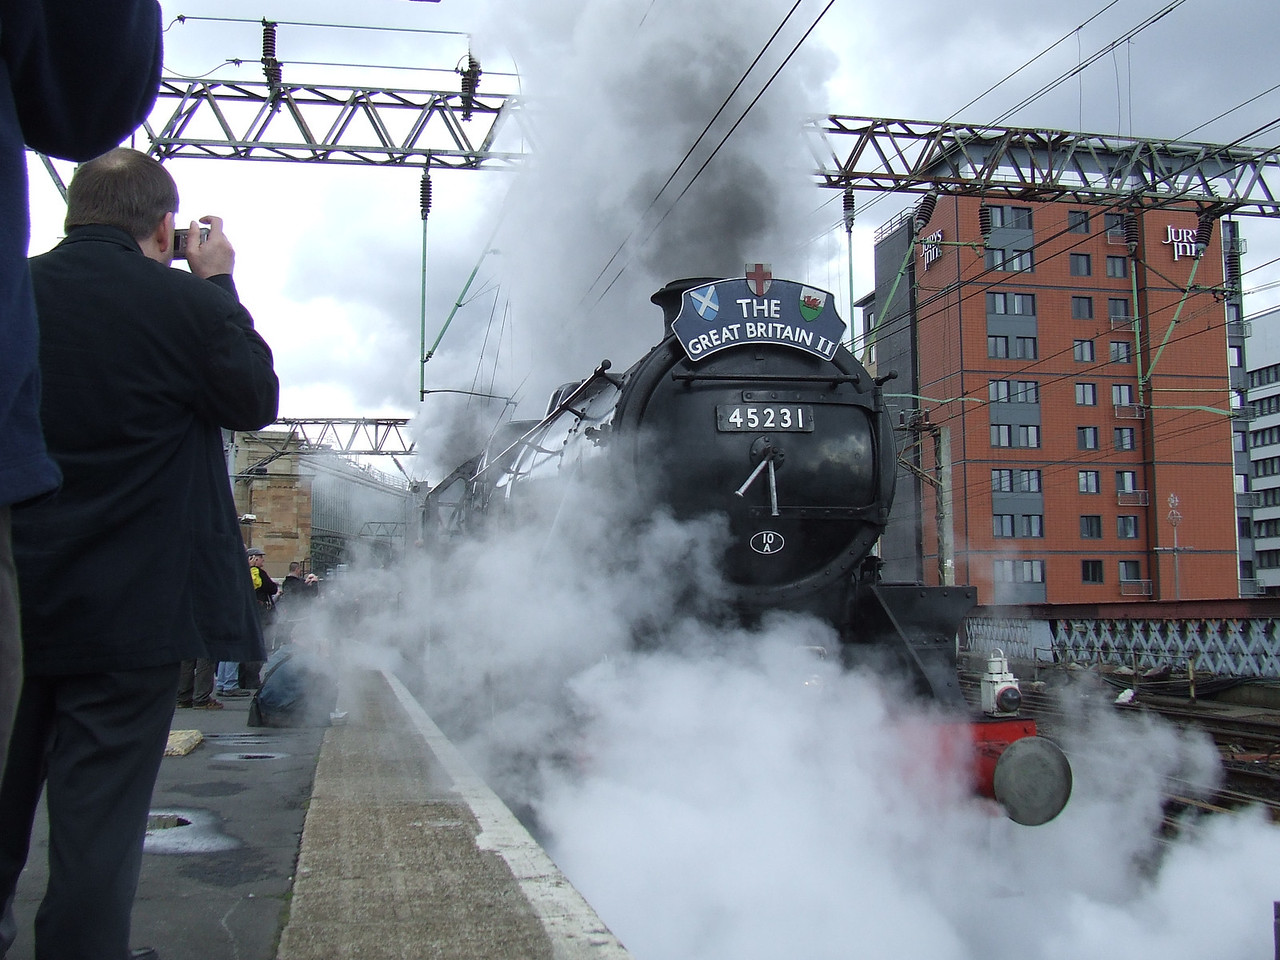 Black 5 45231 <i>The Sherwood Forester</i> at P11 at the head of the Great Britain II, departing on the Inverness leg of the tour